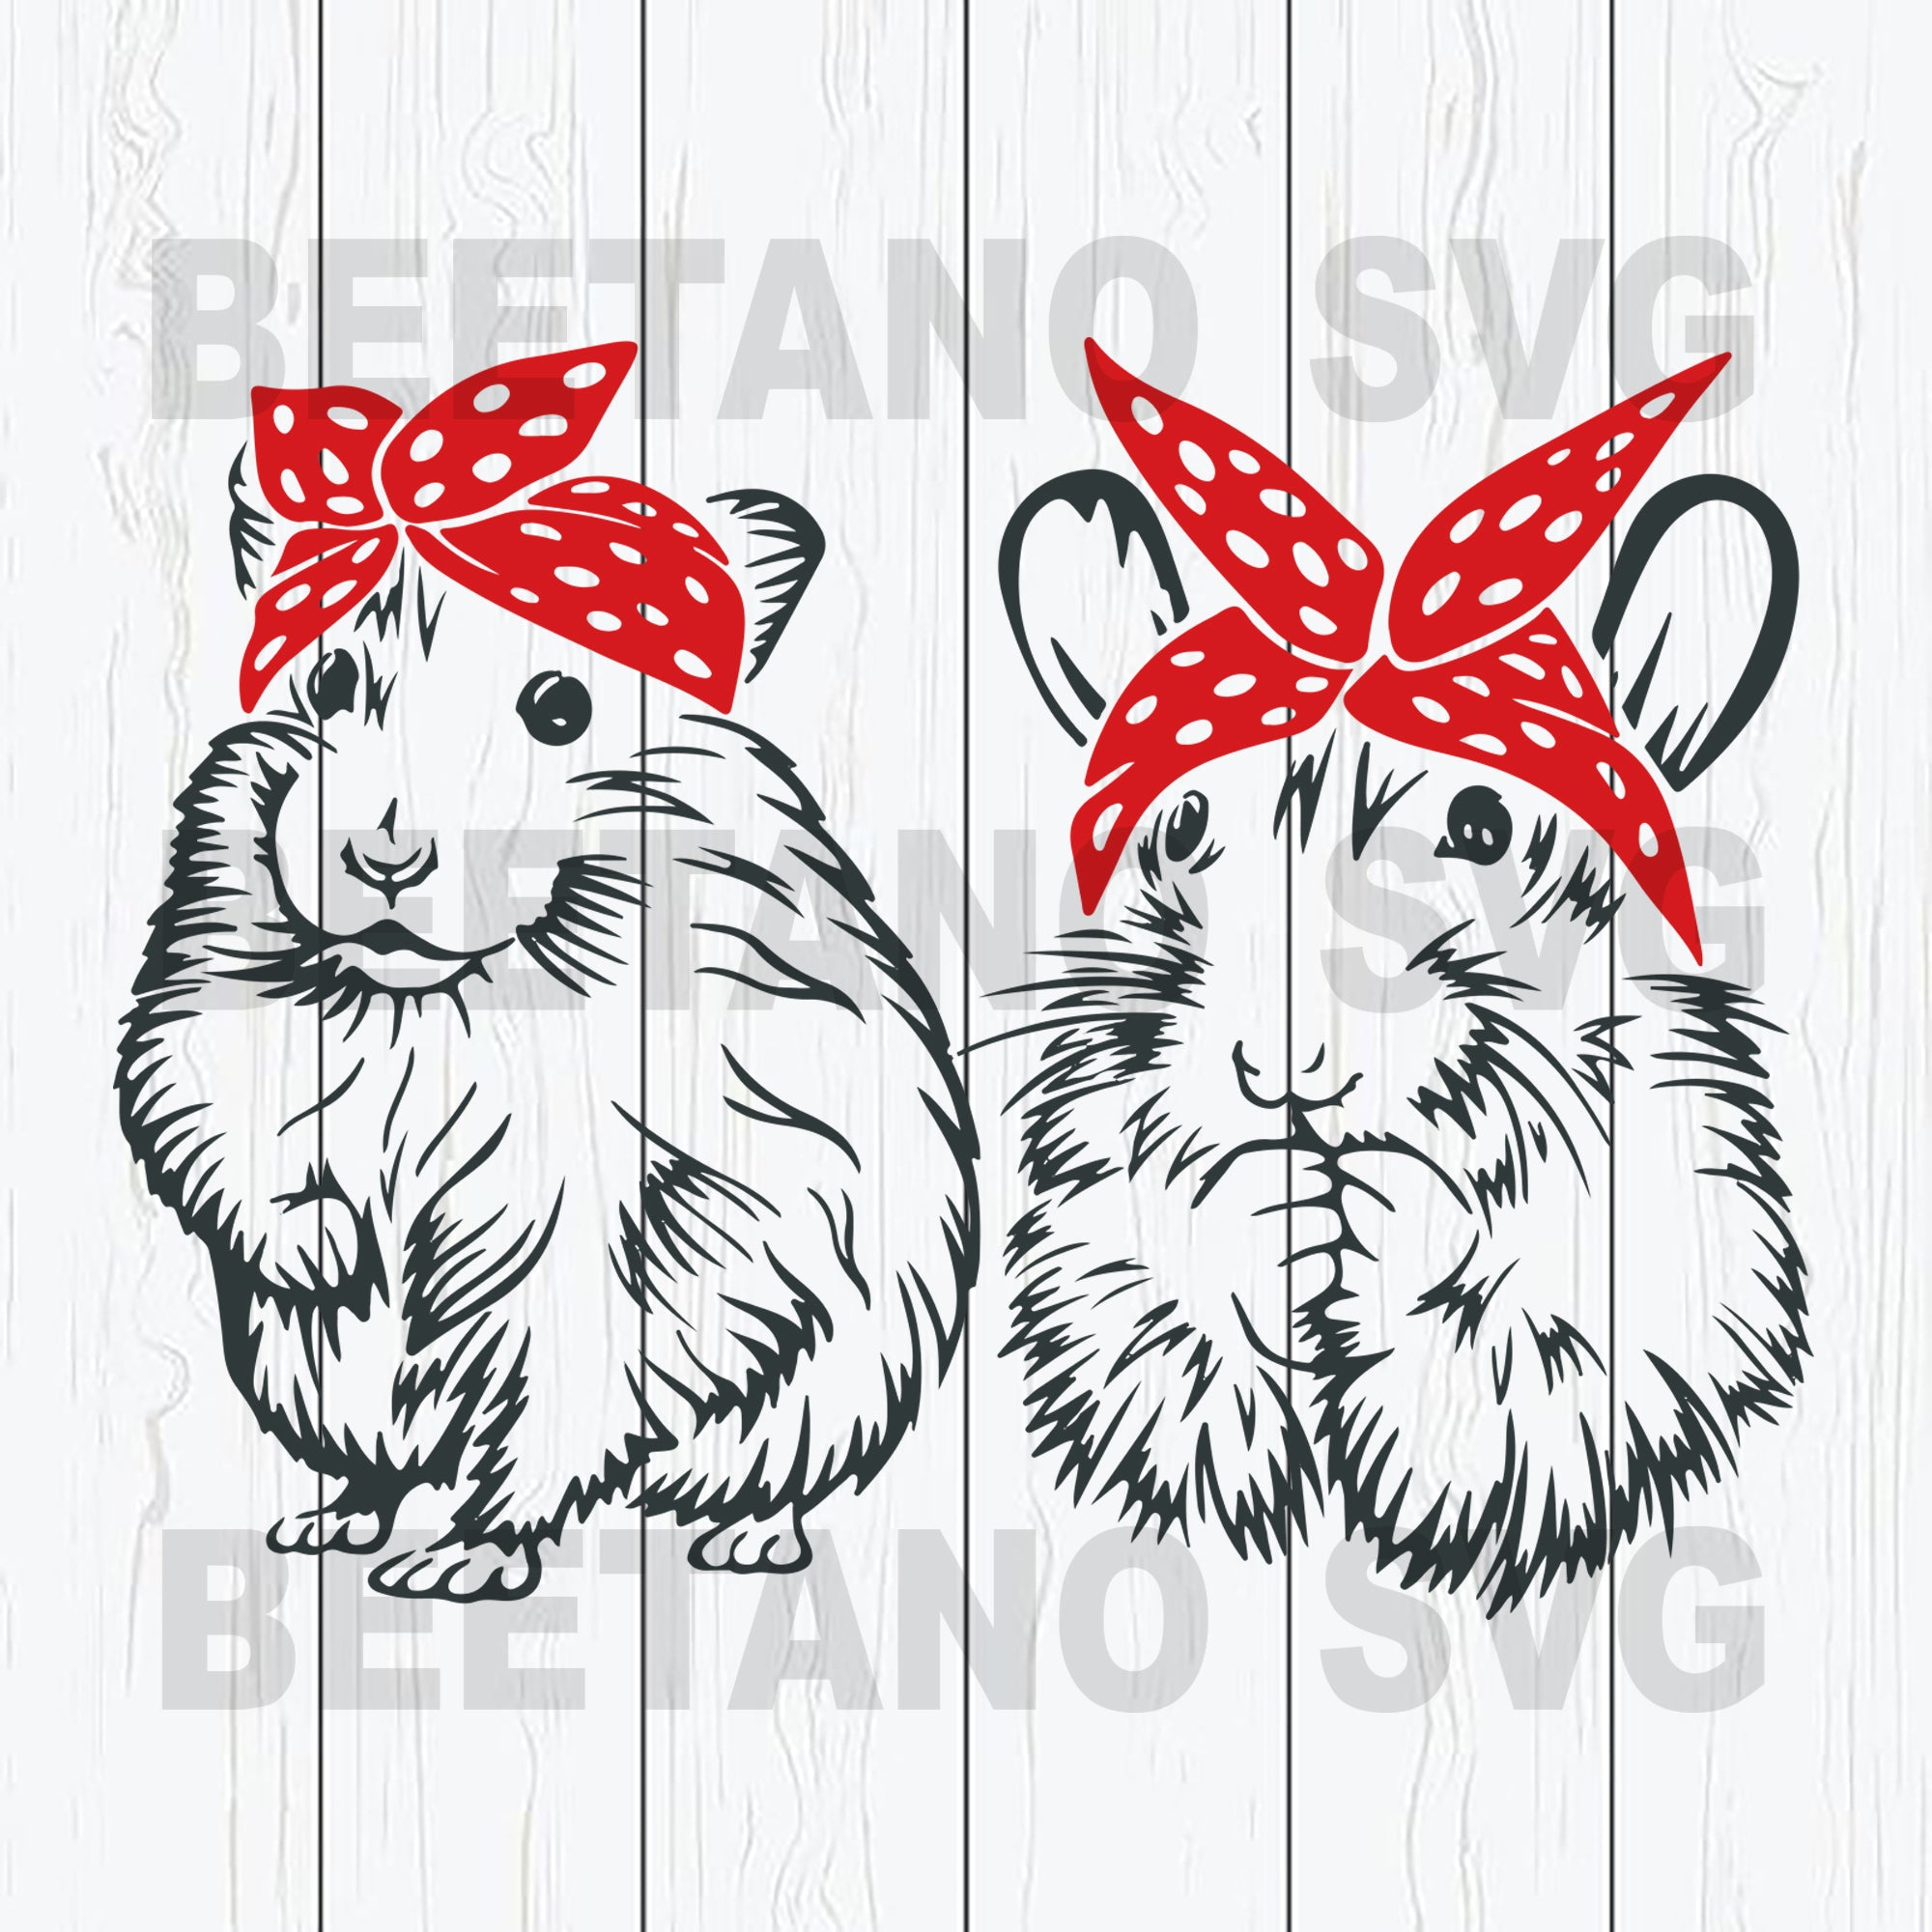 Bunny Mama Svg Files, Mama Rabbit Svg Files, Mama Rabbit With Bow Tie Svg Files